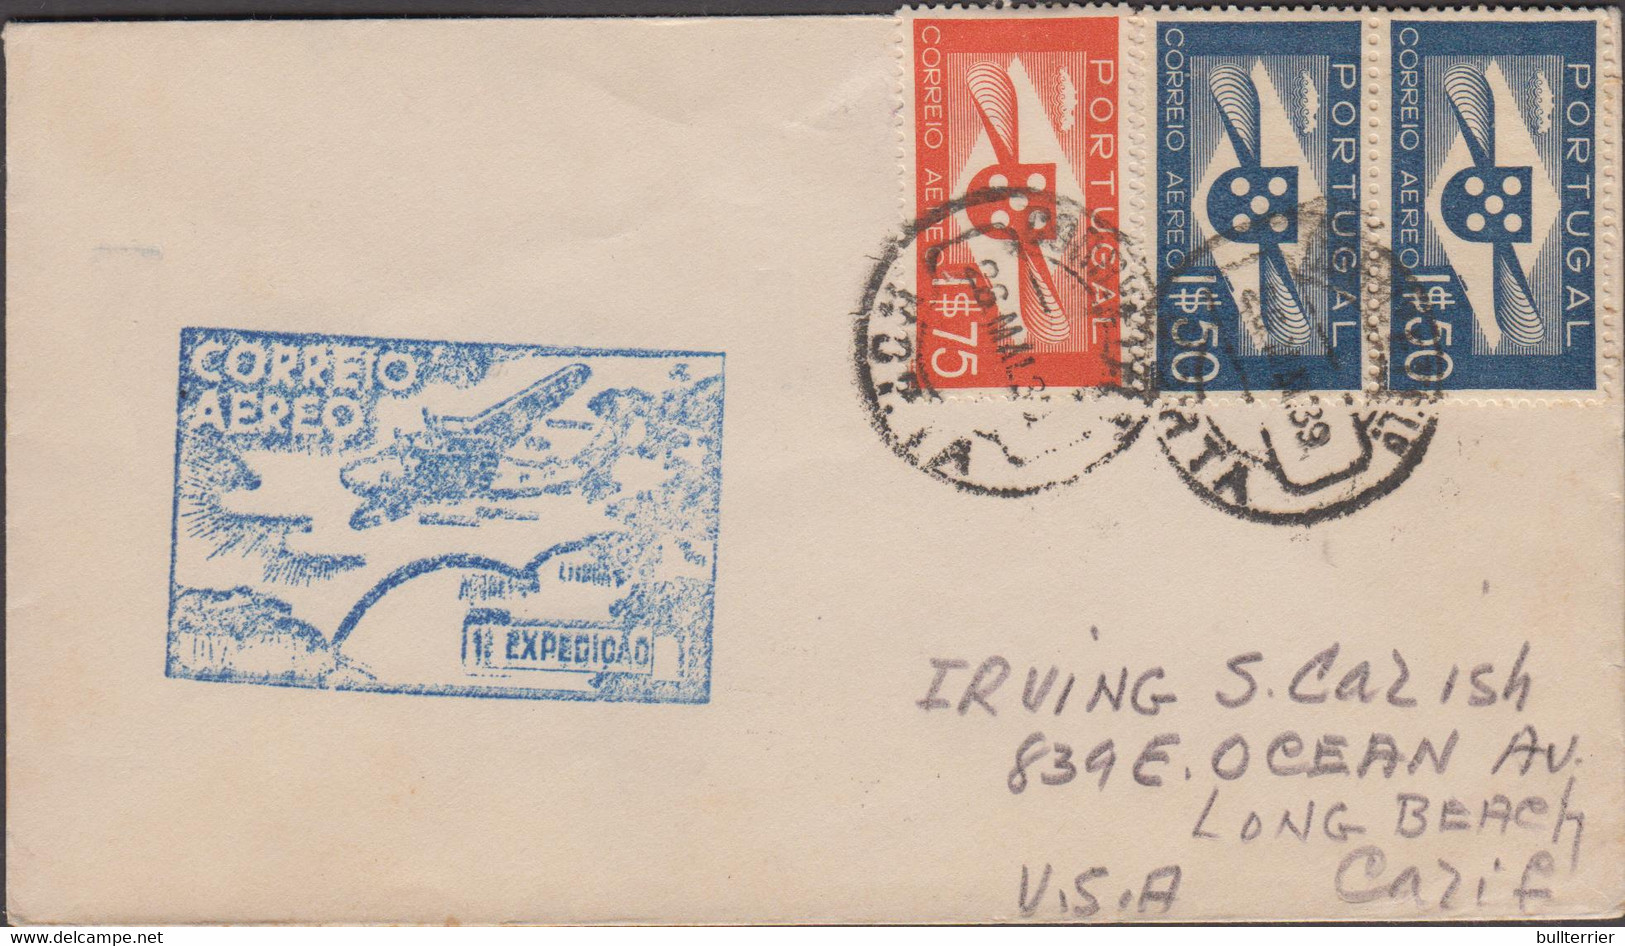 HORTA  - AZORES  -1939 - FIRST FLIGHT COVER TO LONG BEACH CALIFORNIA  WITH BACK STAMP - Horta